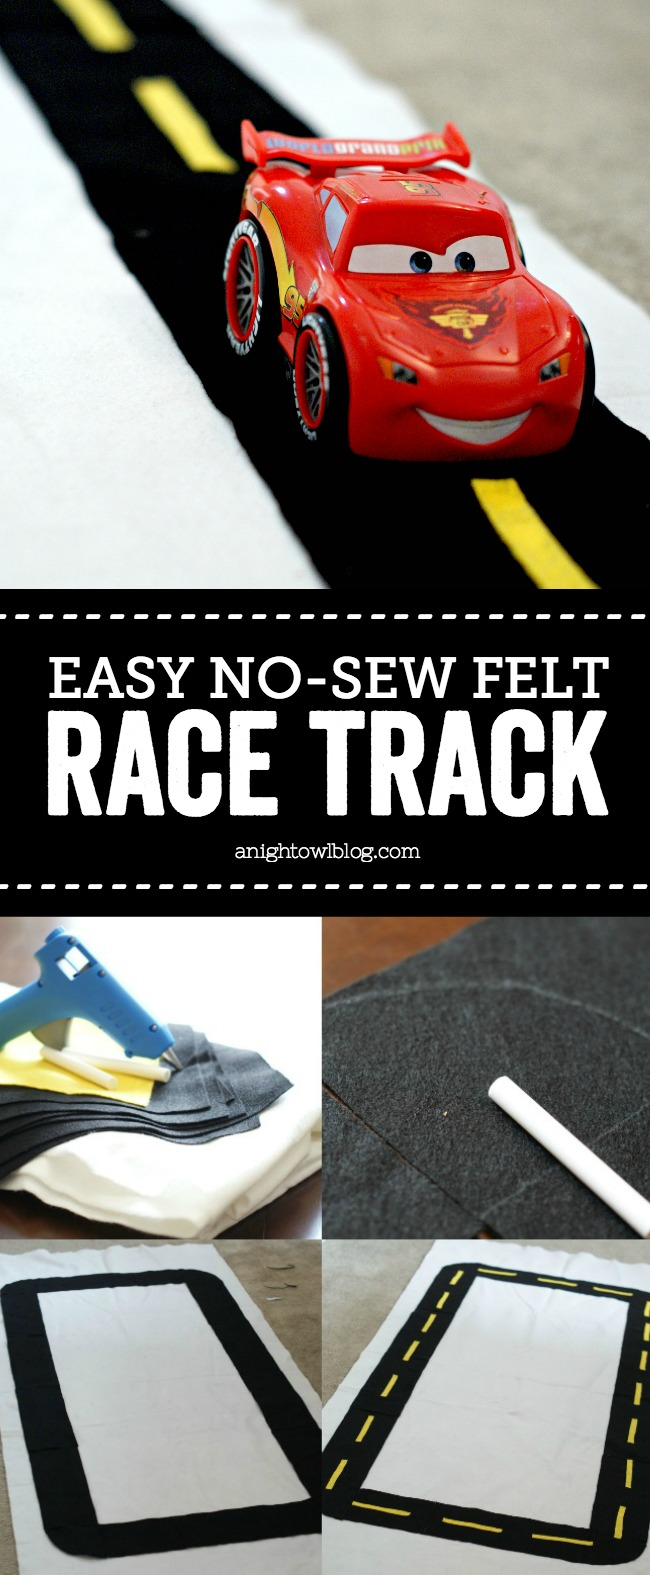 This Easy No-Sew Felt Race Track is perfect for Cars-loving kiddos! Make it in just an afternoon, rolls up for play time and time again!